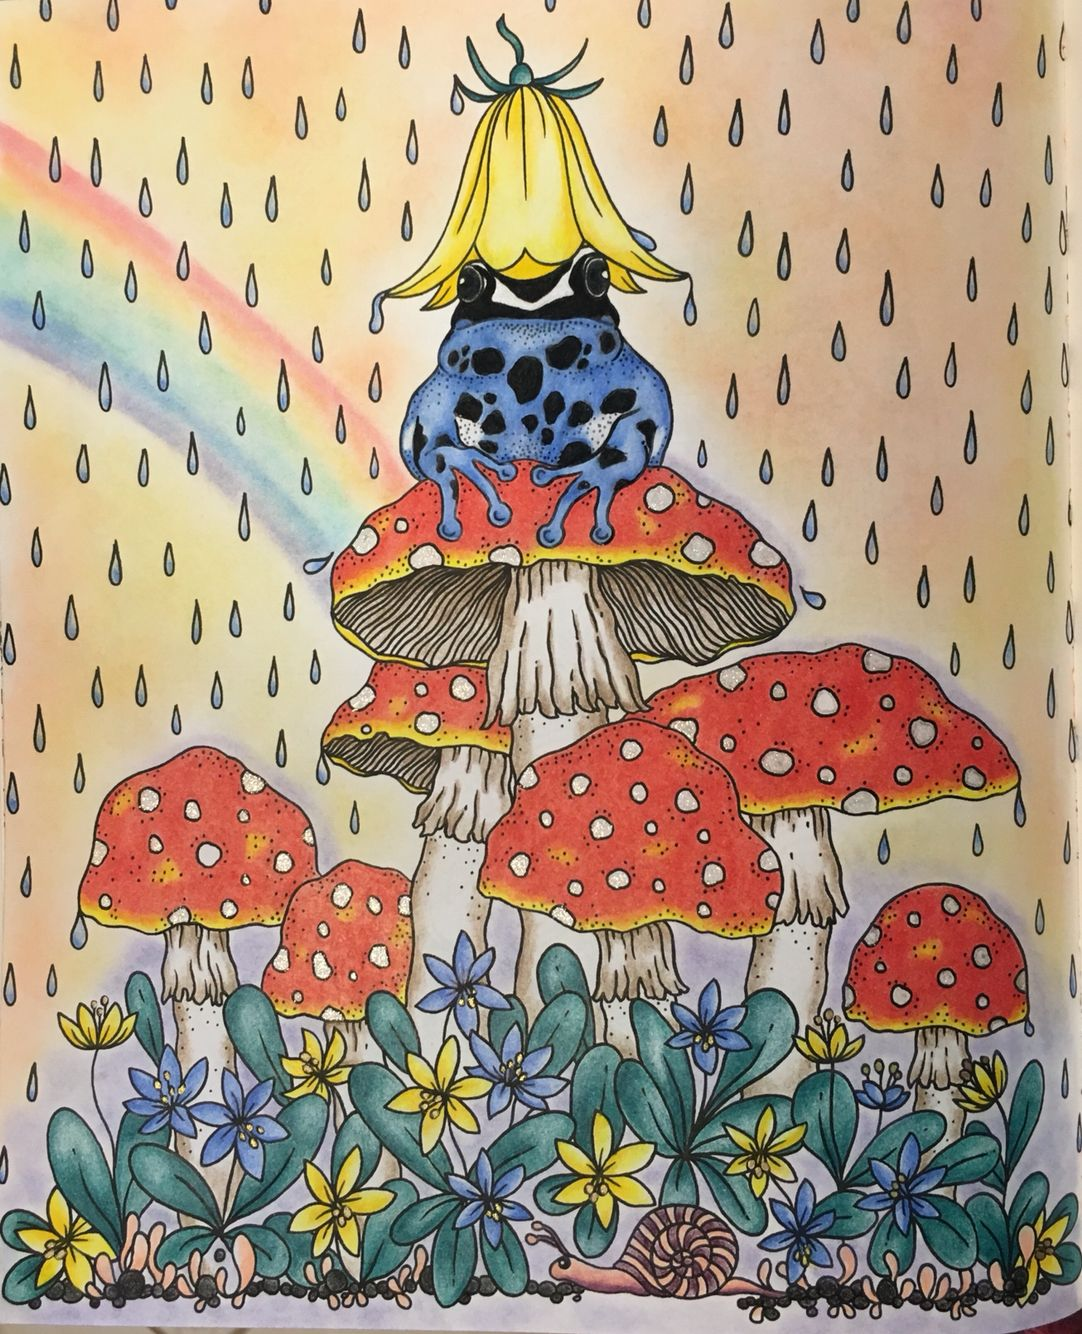 Pin Op Coloring Book Dagdrommer Daydream